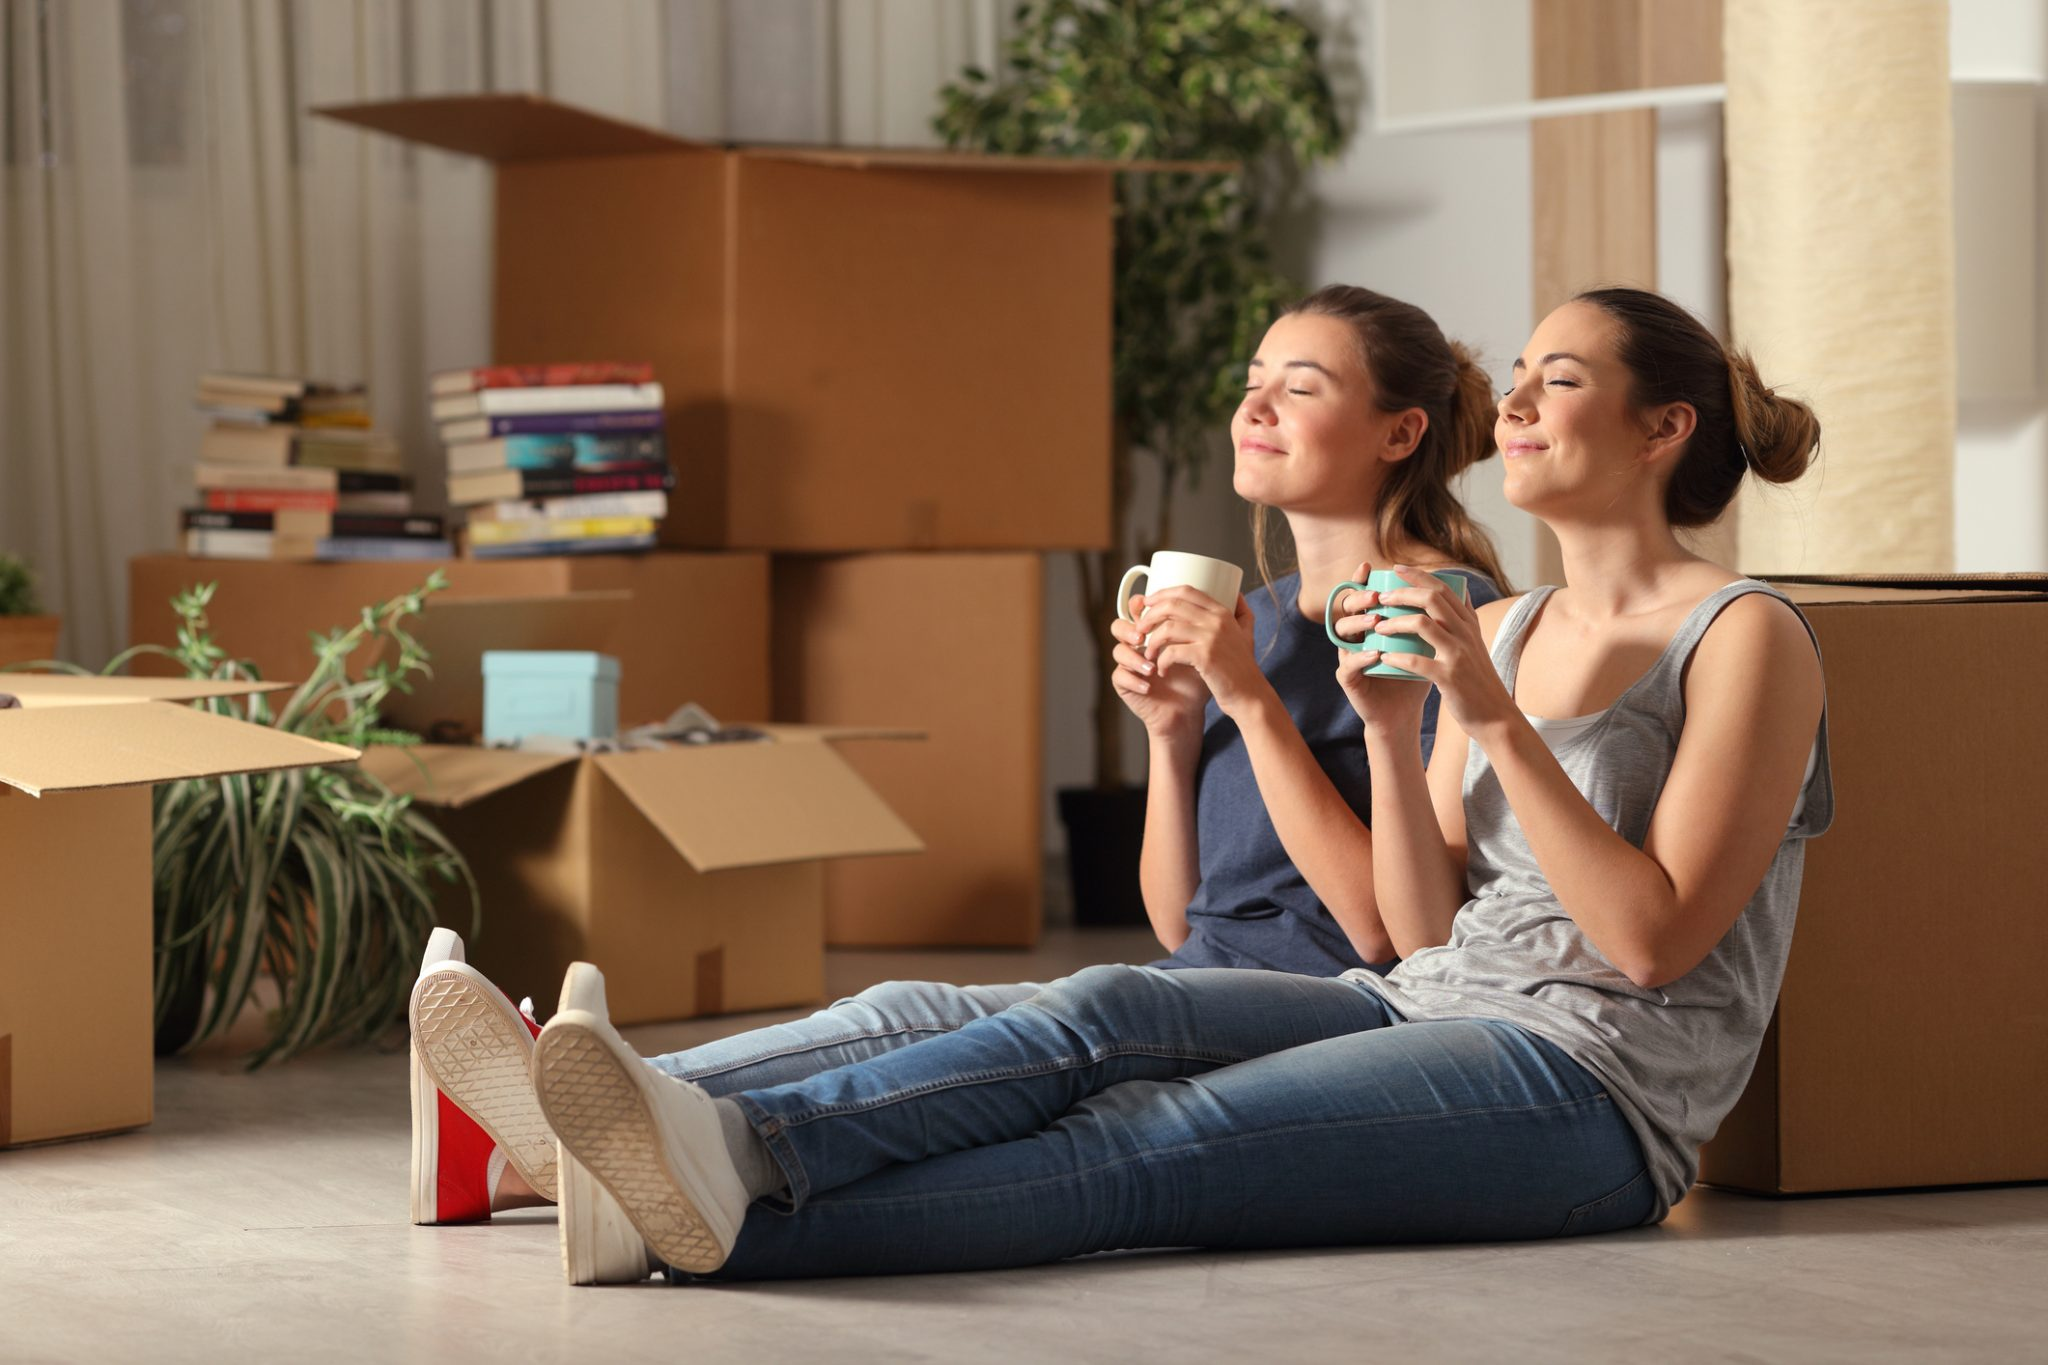 What are students looking for in their rental properties?